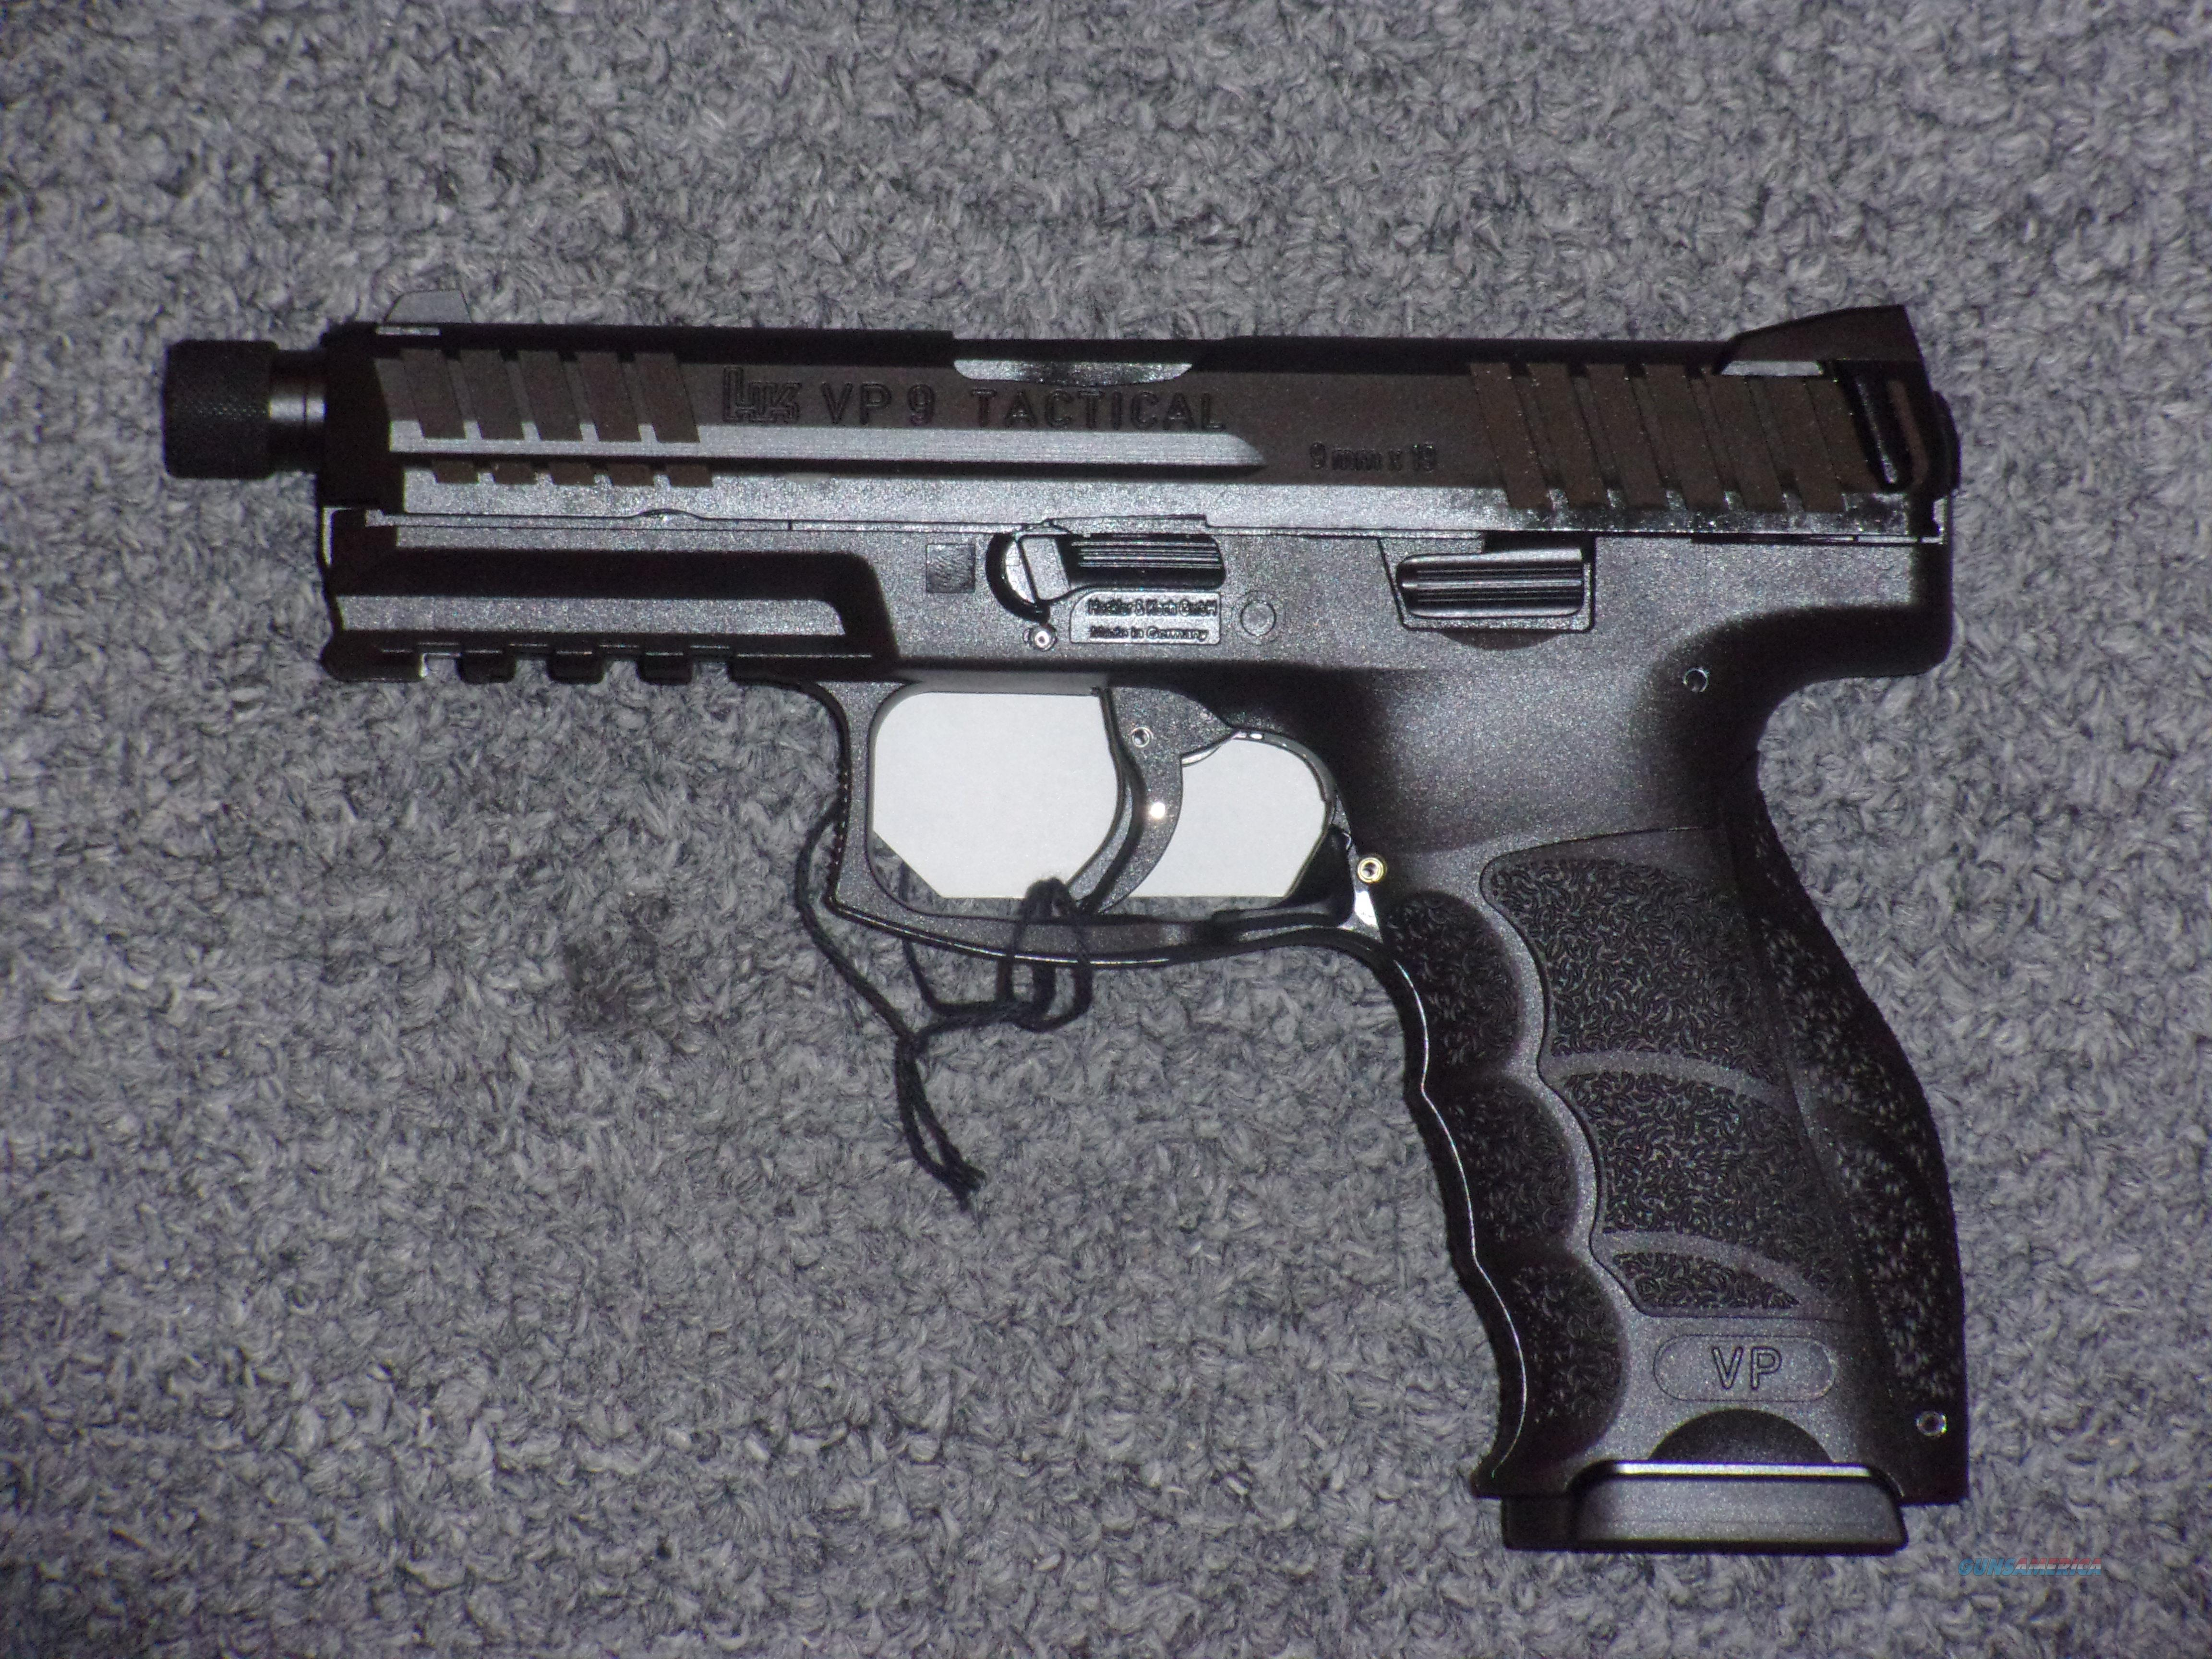 Heckler & Koch VP9 Tactical  Guns > Pistols > Heckler & Koch Pistols > Polymer Frame